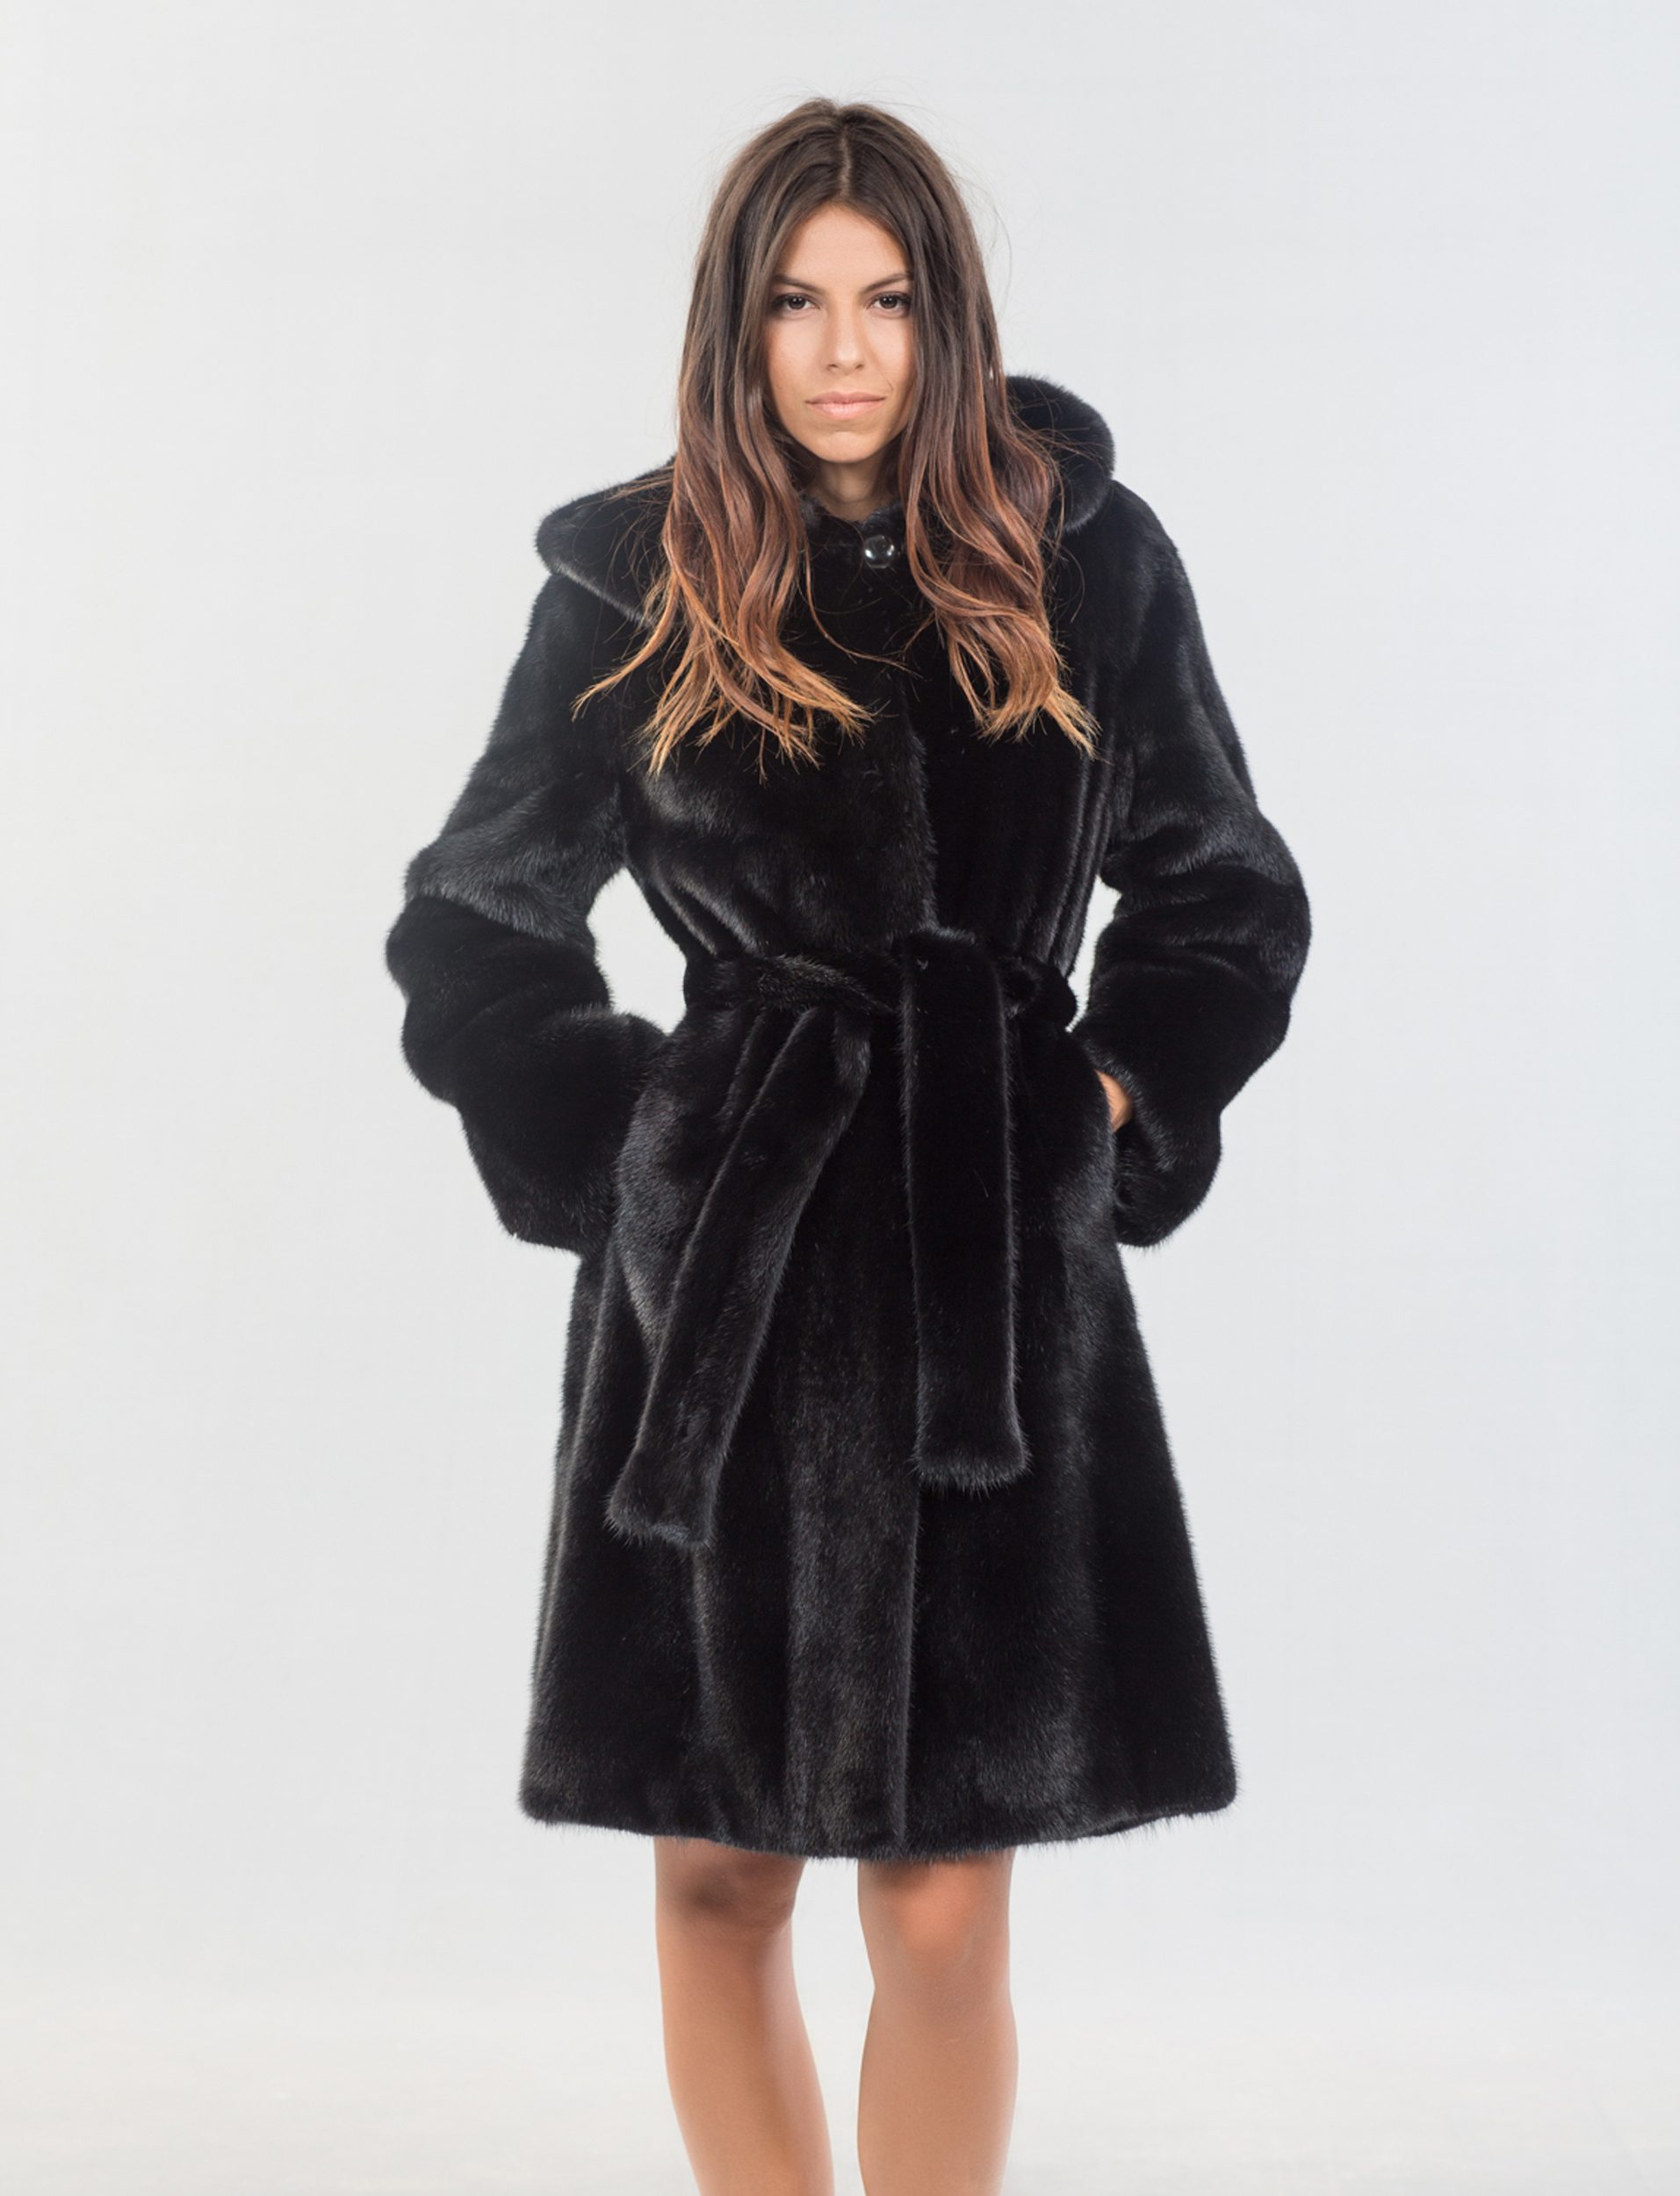 Black Mink Fur Jacket With Hood. 100% Real Fur Coats and Accessories.